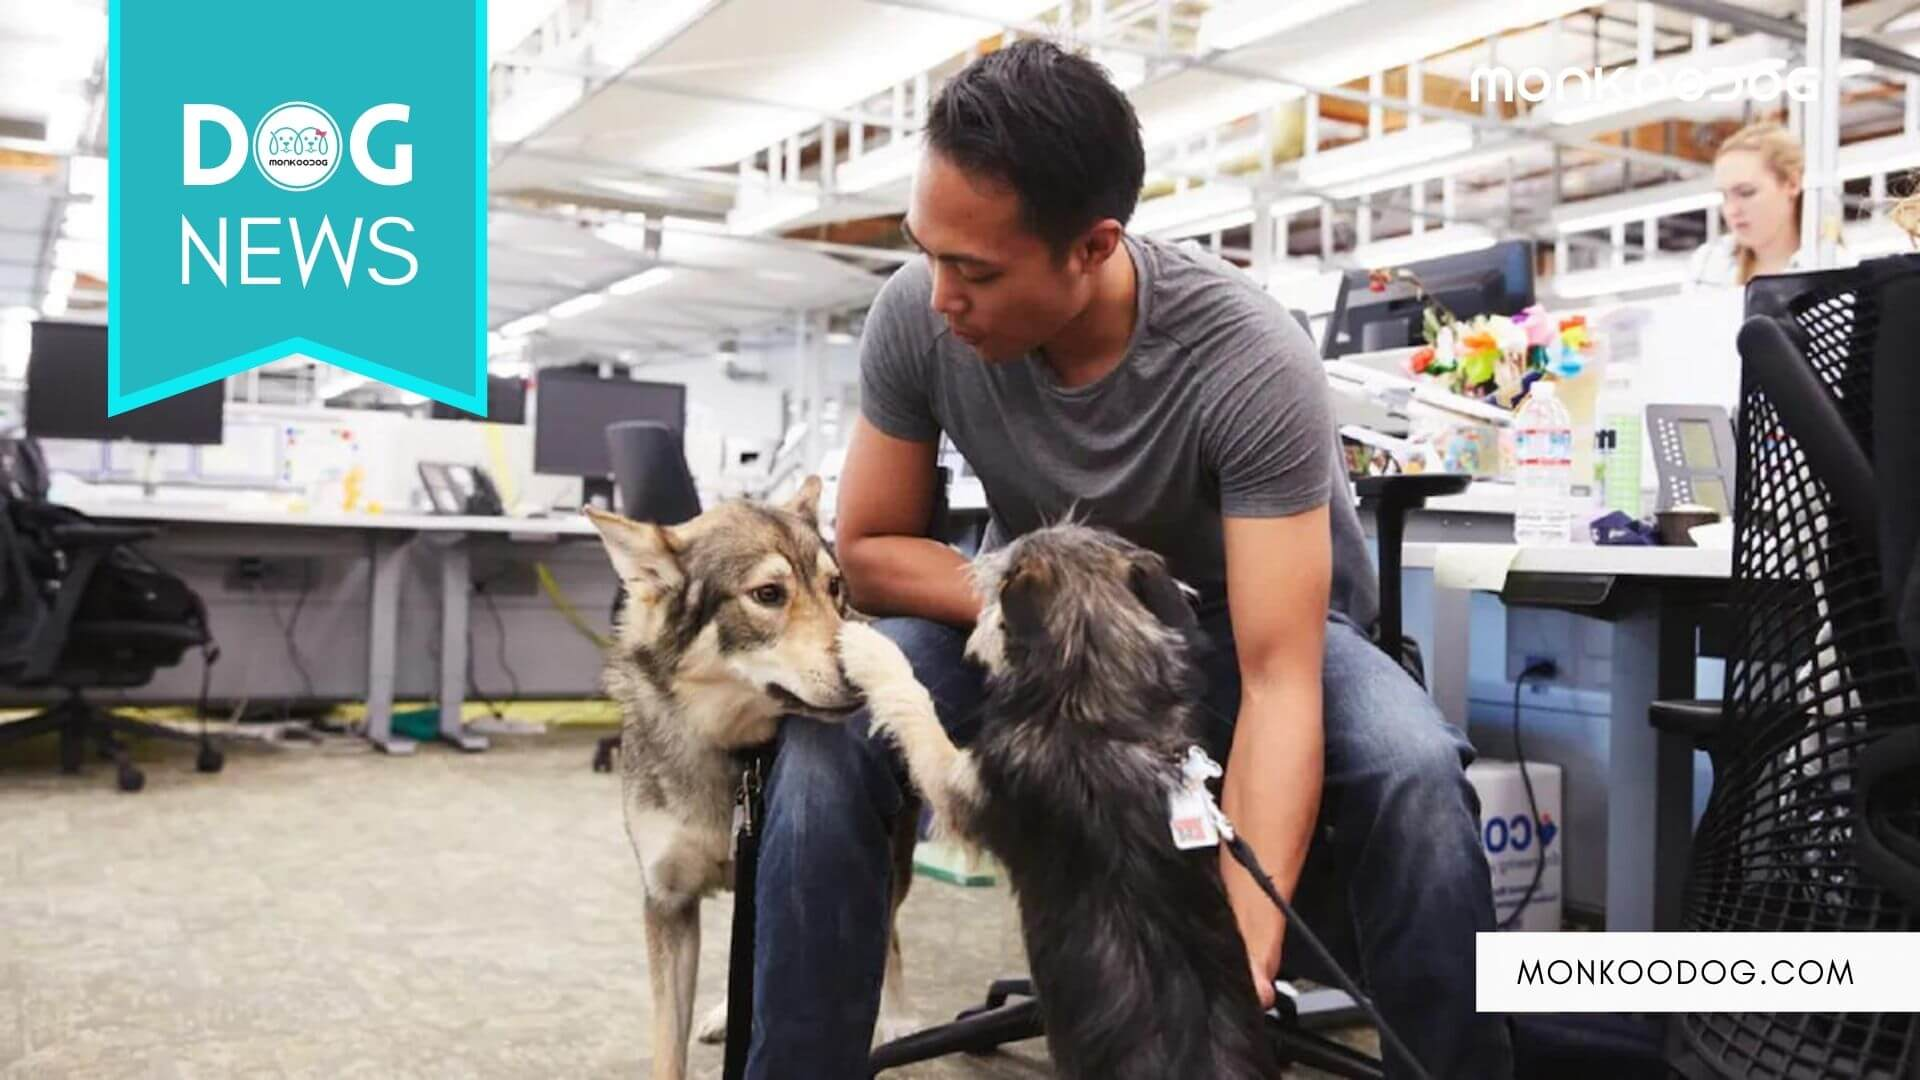 The world's most famous tech giant, Google officially claims the title of being the first 'Dog Company'